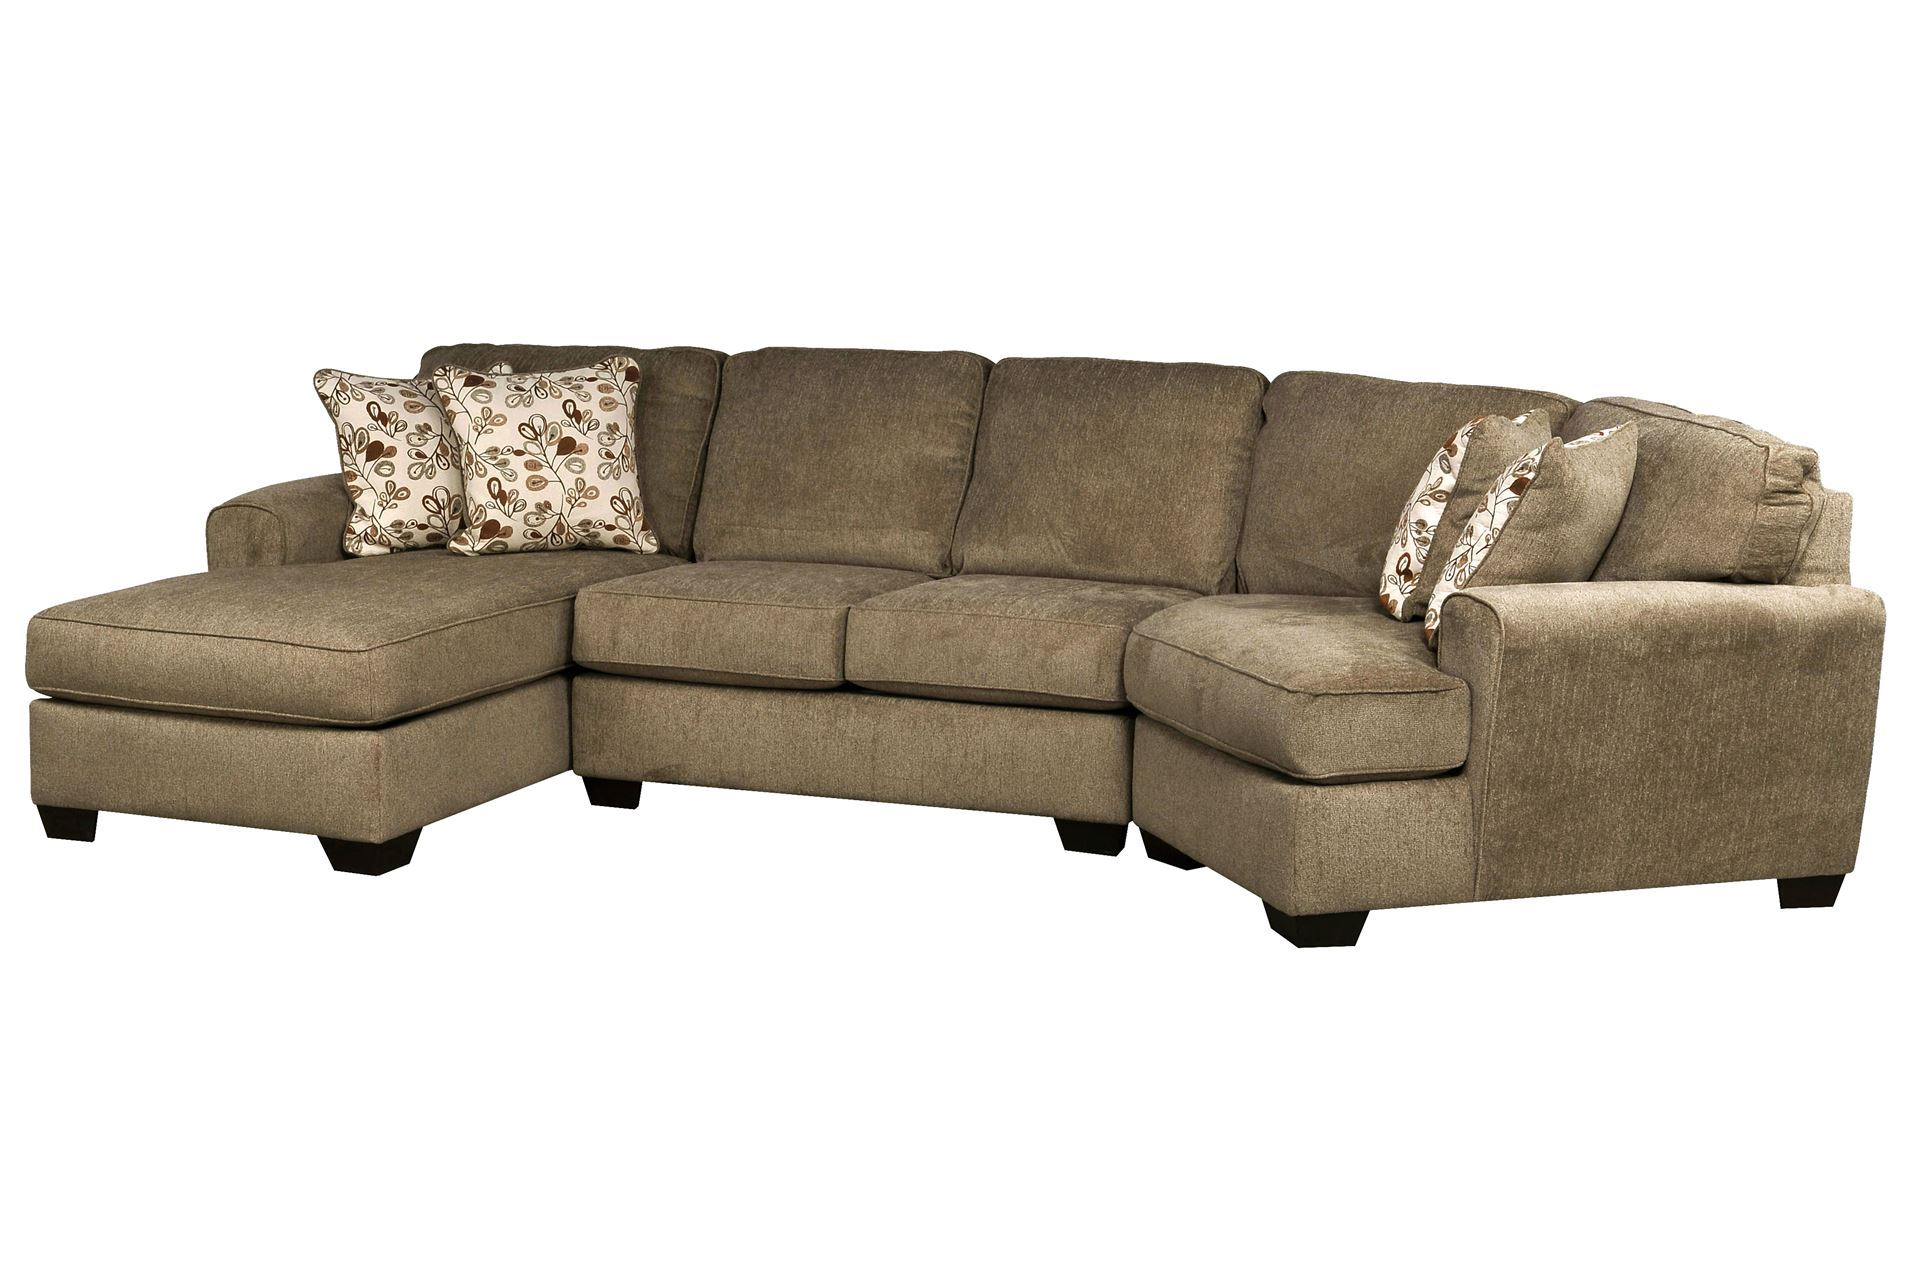 Patola Park 3 Piece Cuddler Sectional W/Laf Corner Chaise ...